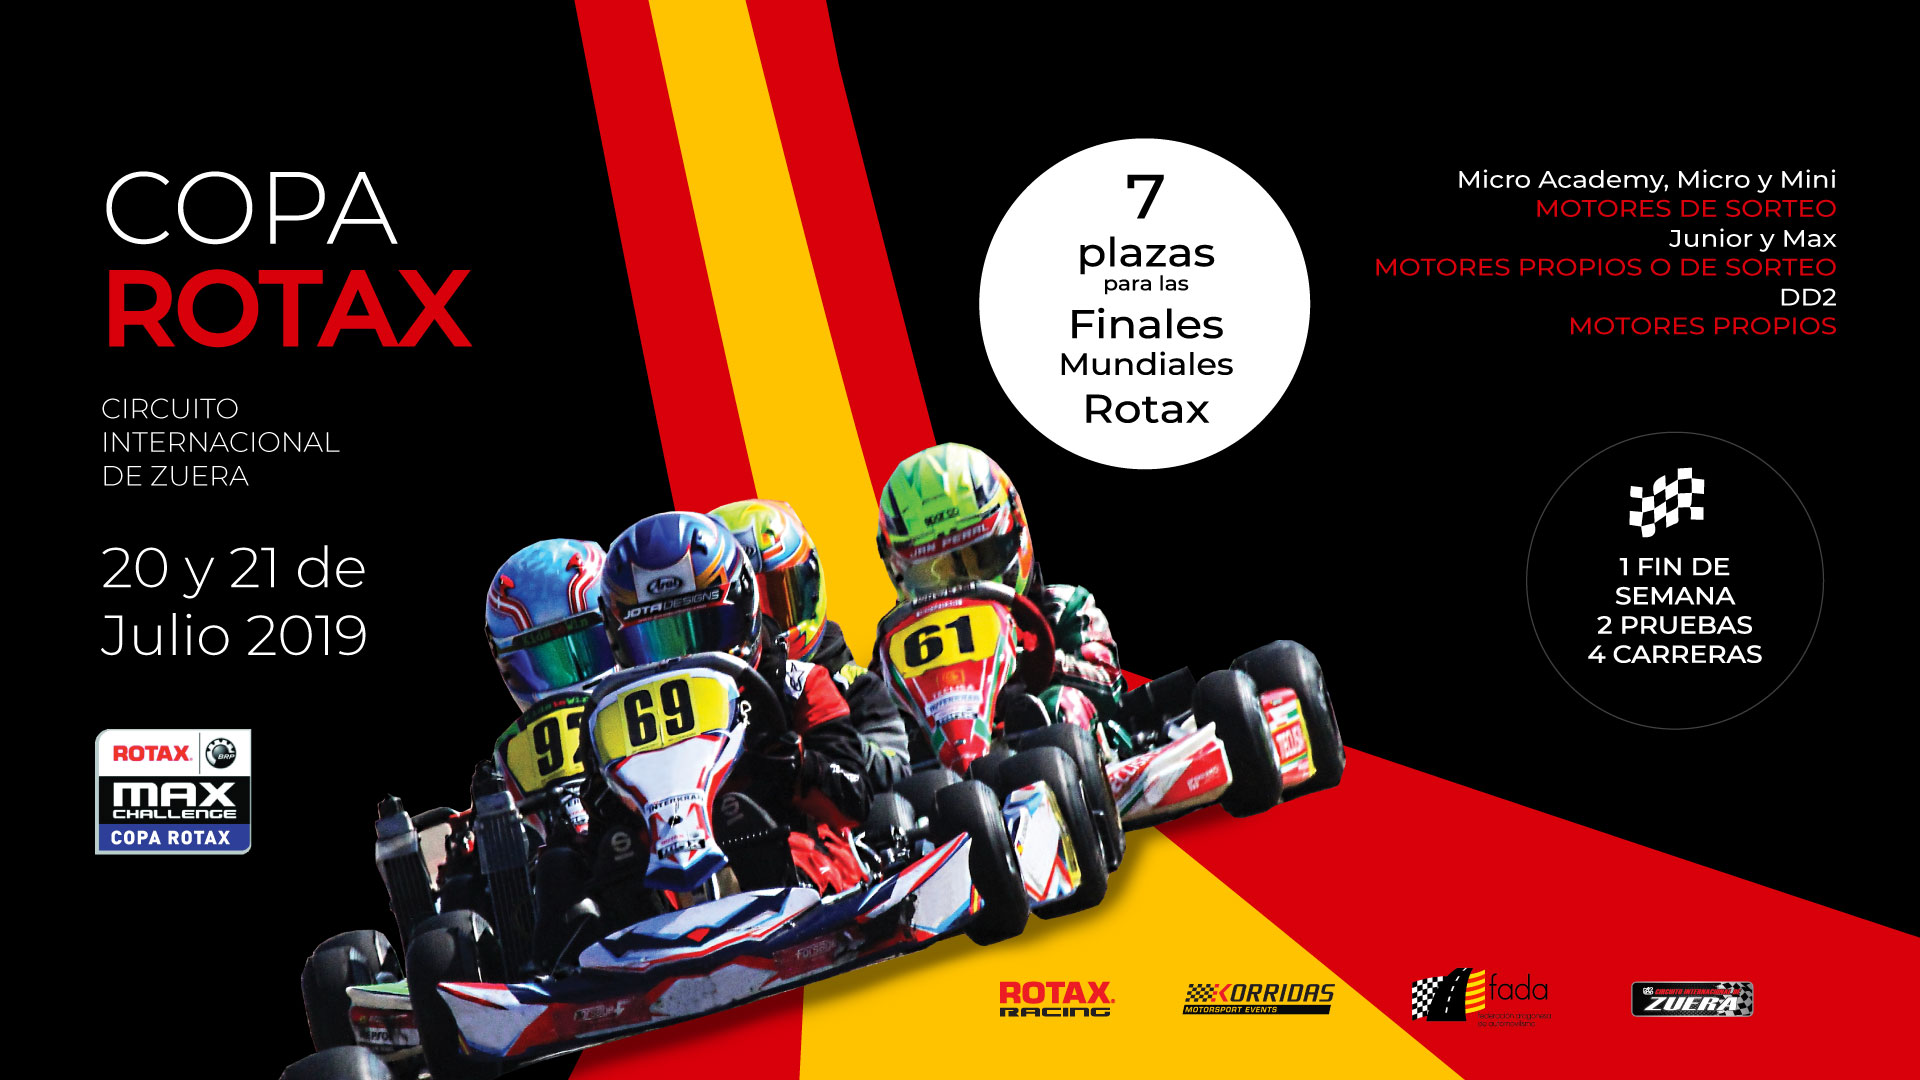 cartaz_copa_rotax_FINAL_RGB_1920x1080